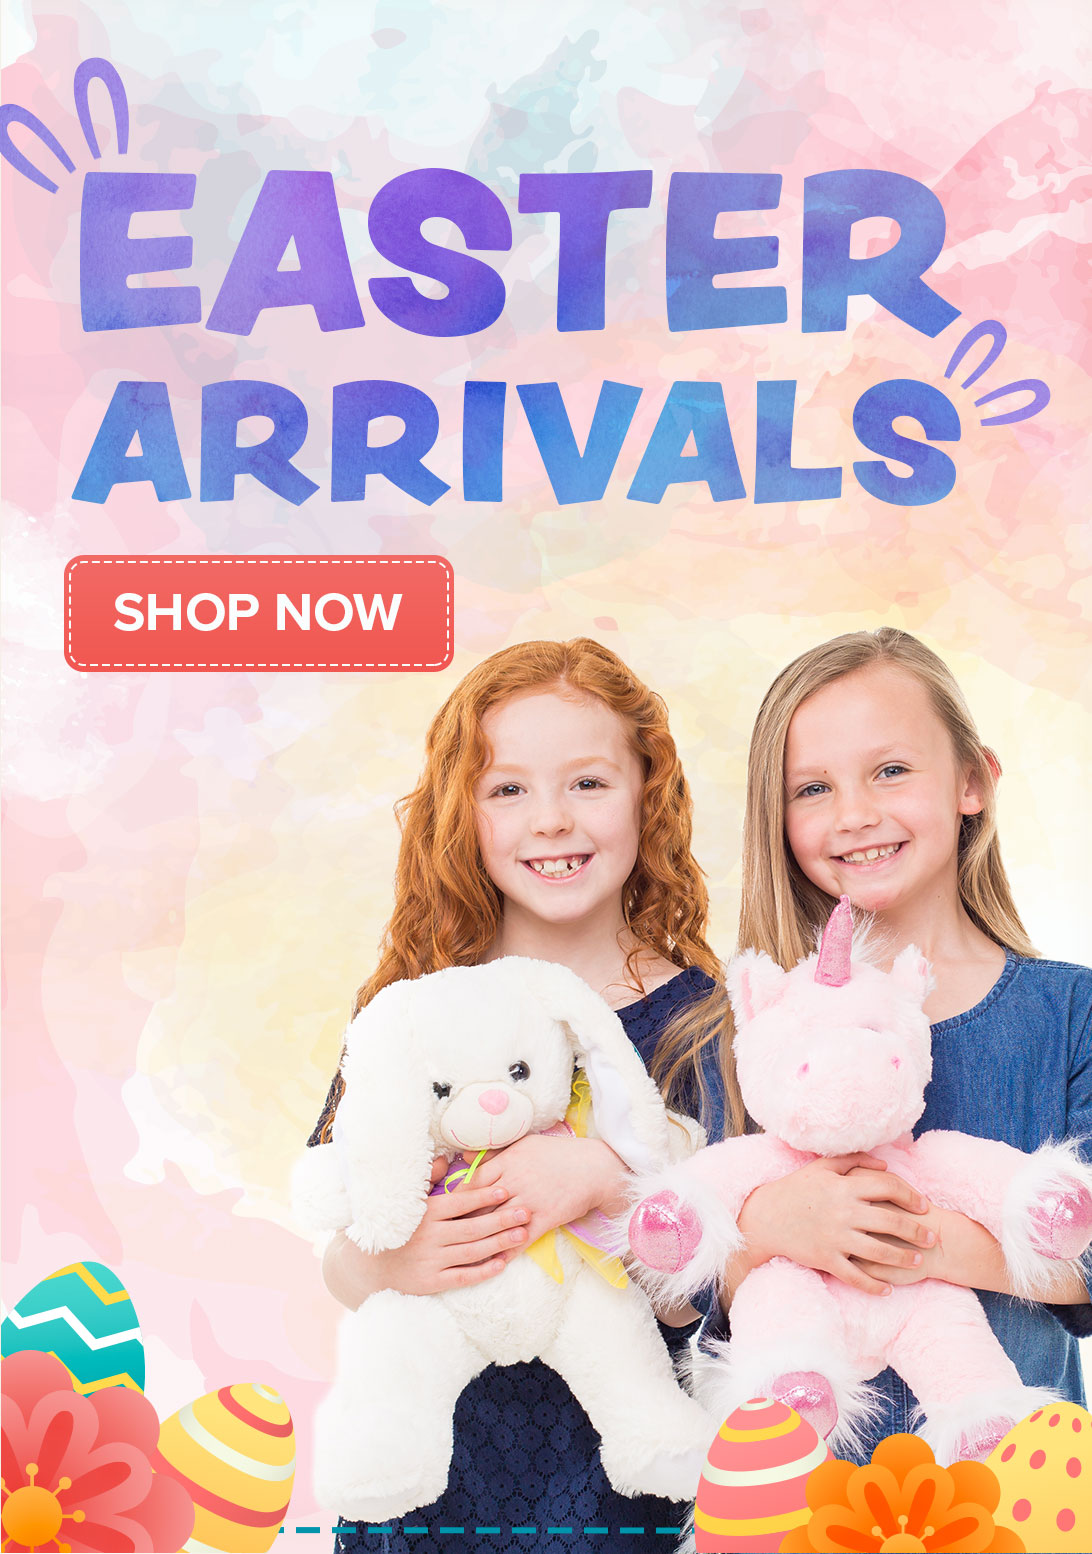 Easter Arrivals - Shop Now